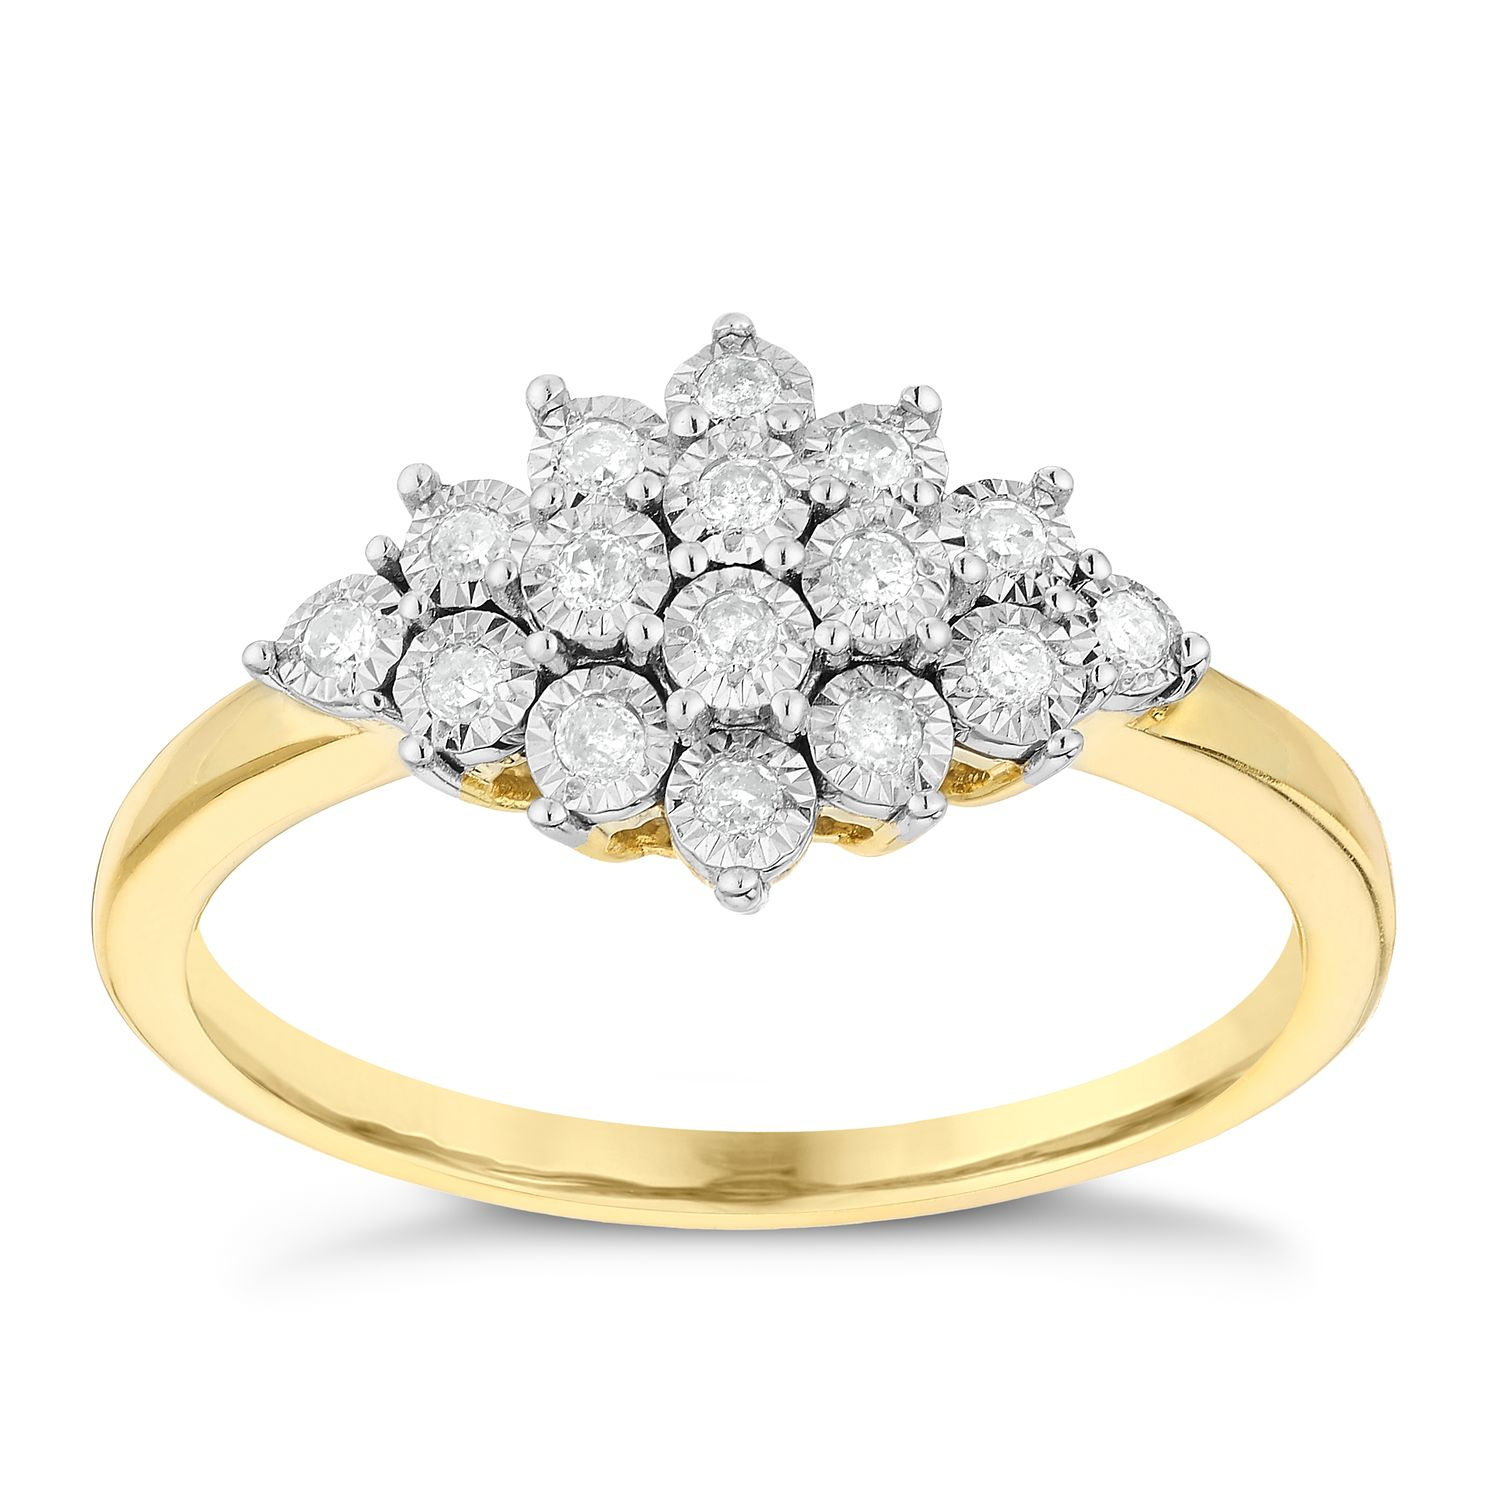 9ct Yellow Gold Vintage Inspired Diamond Cluster Ring H Samuel